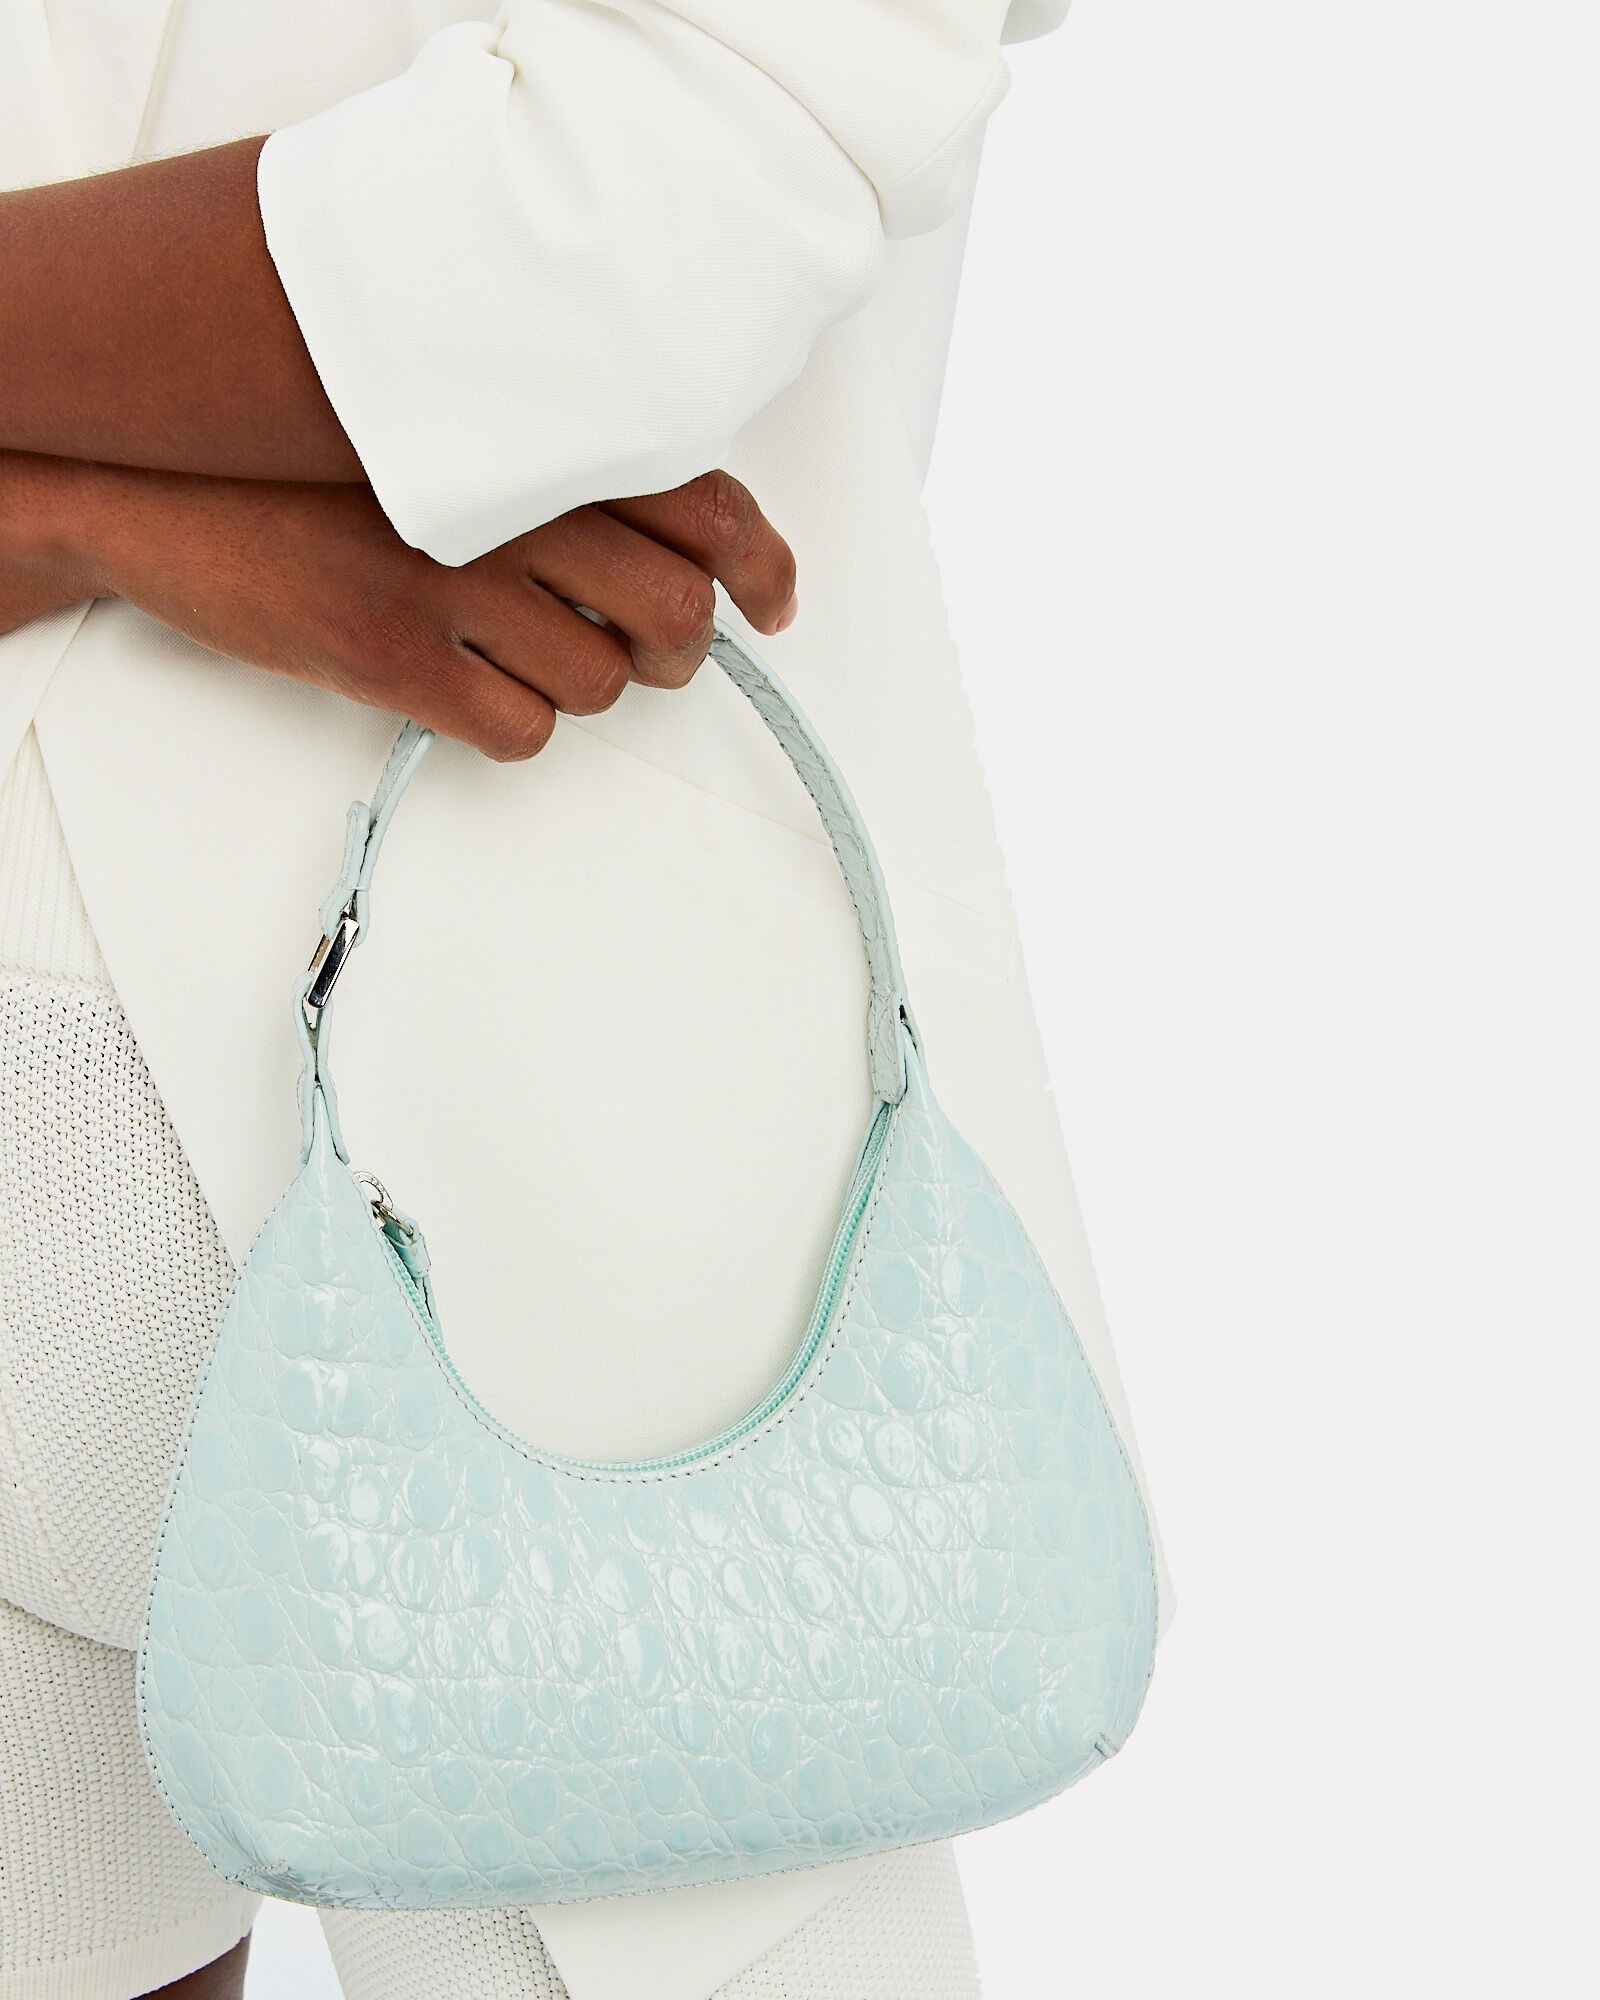 Baby Amber Croc-Embossed Leather Bag, BLUE-LT, hi-res